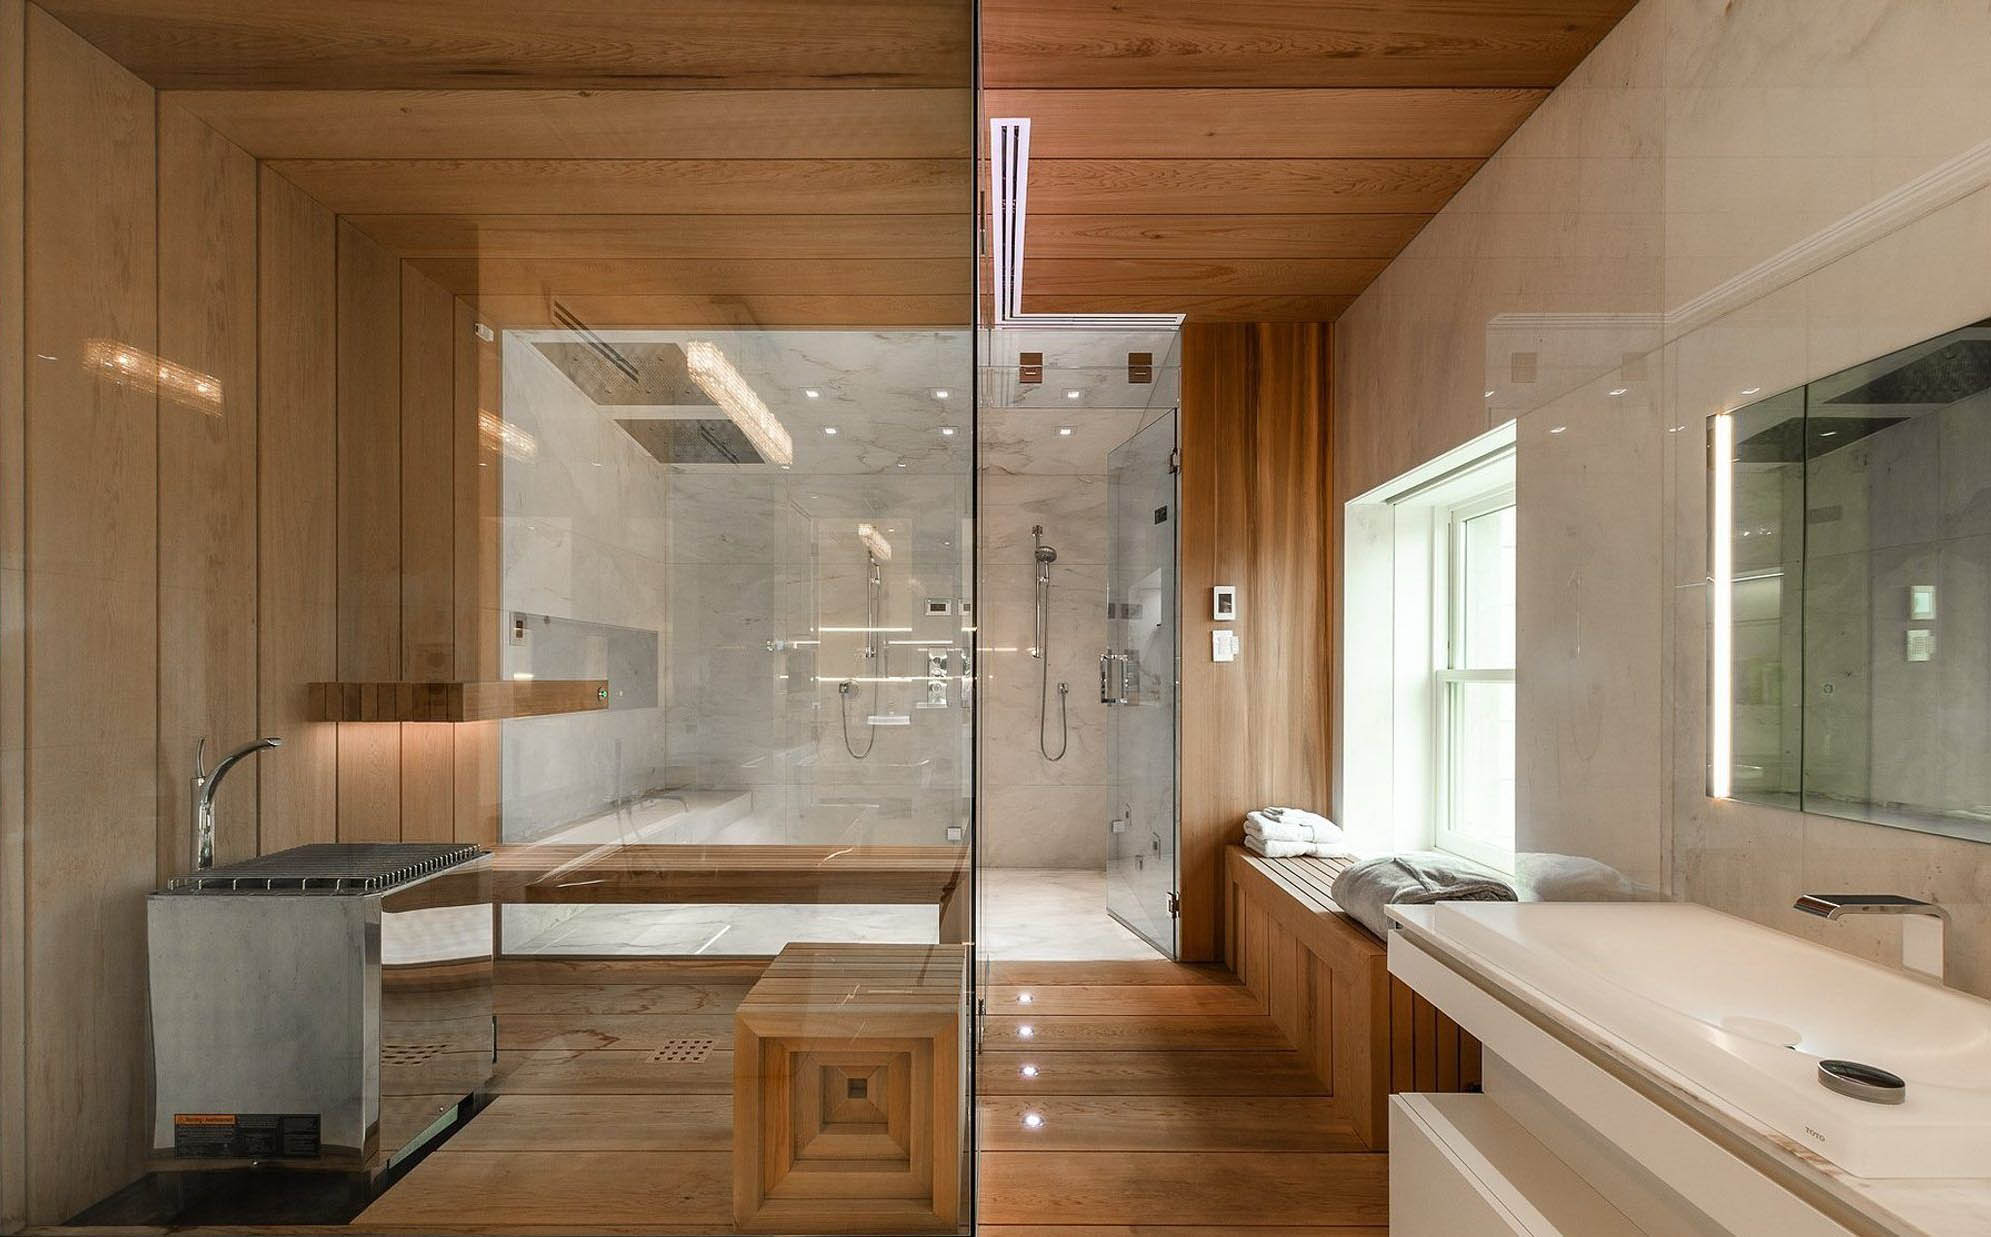 Modern bathroom design with wood wall paneling. Light natural wood finish with just a sealant on the floors, walls and ceiling.